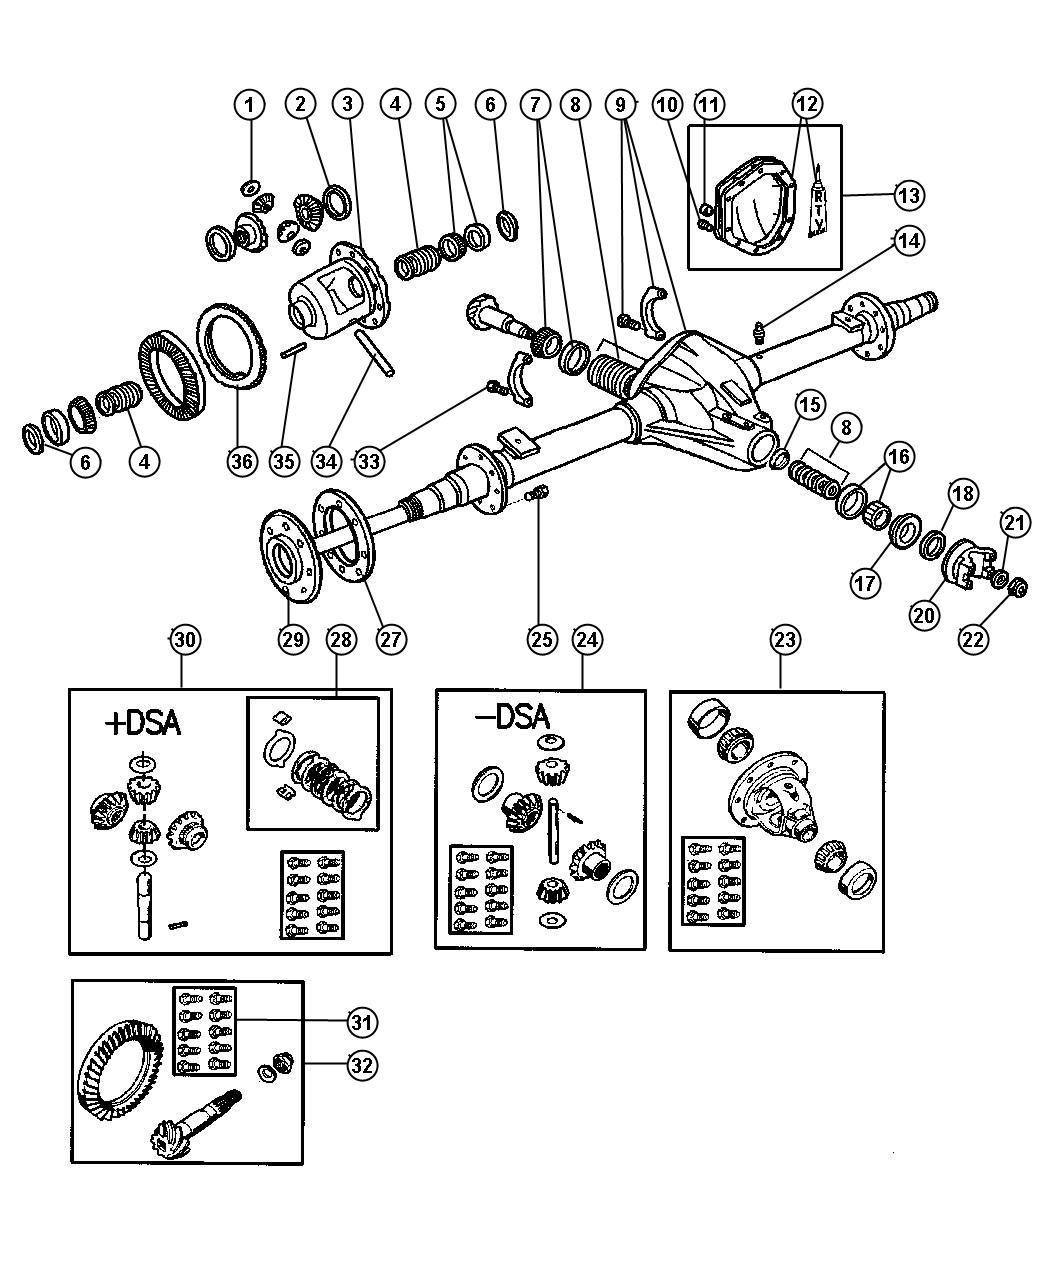 Jeep Grand Cherokee Rear Bumper Parts Diagram. Jeep. Auto